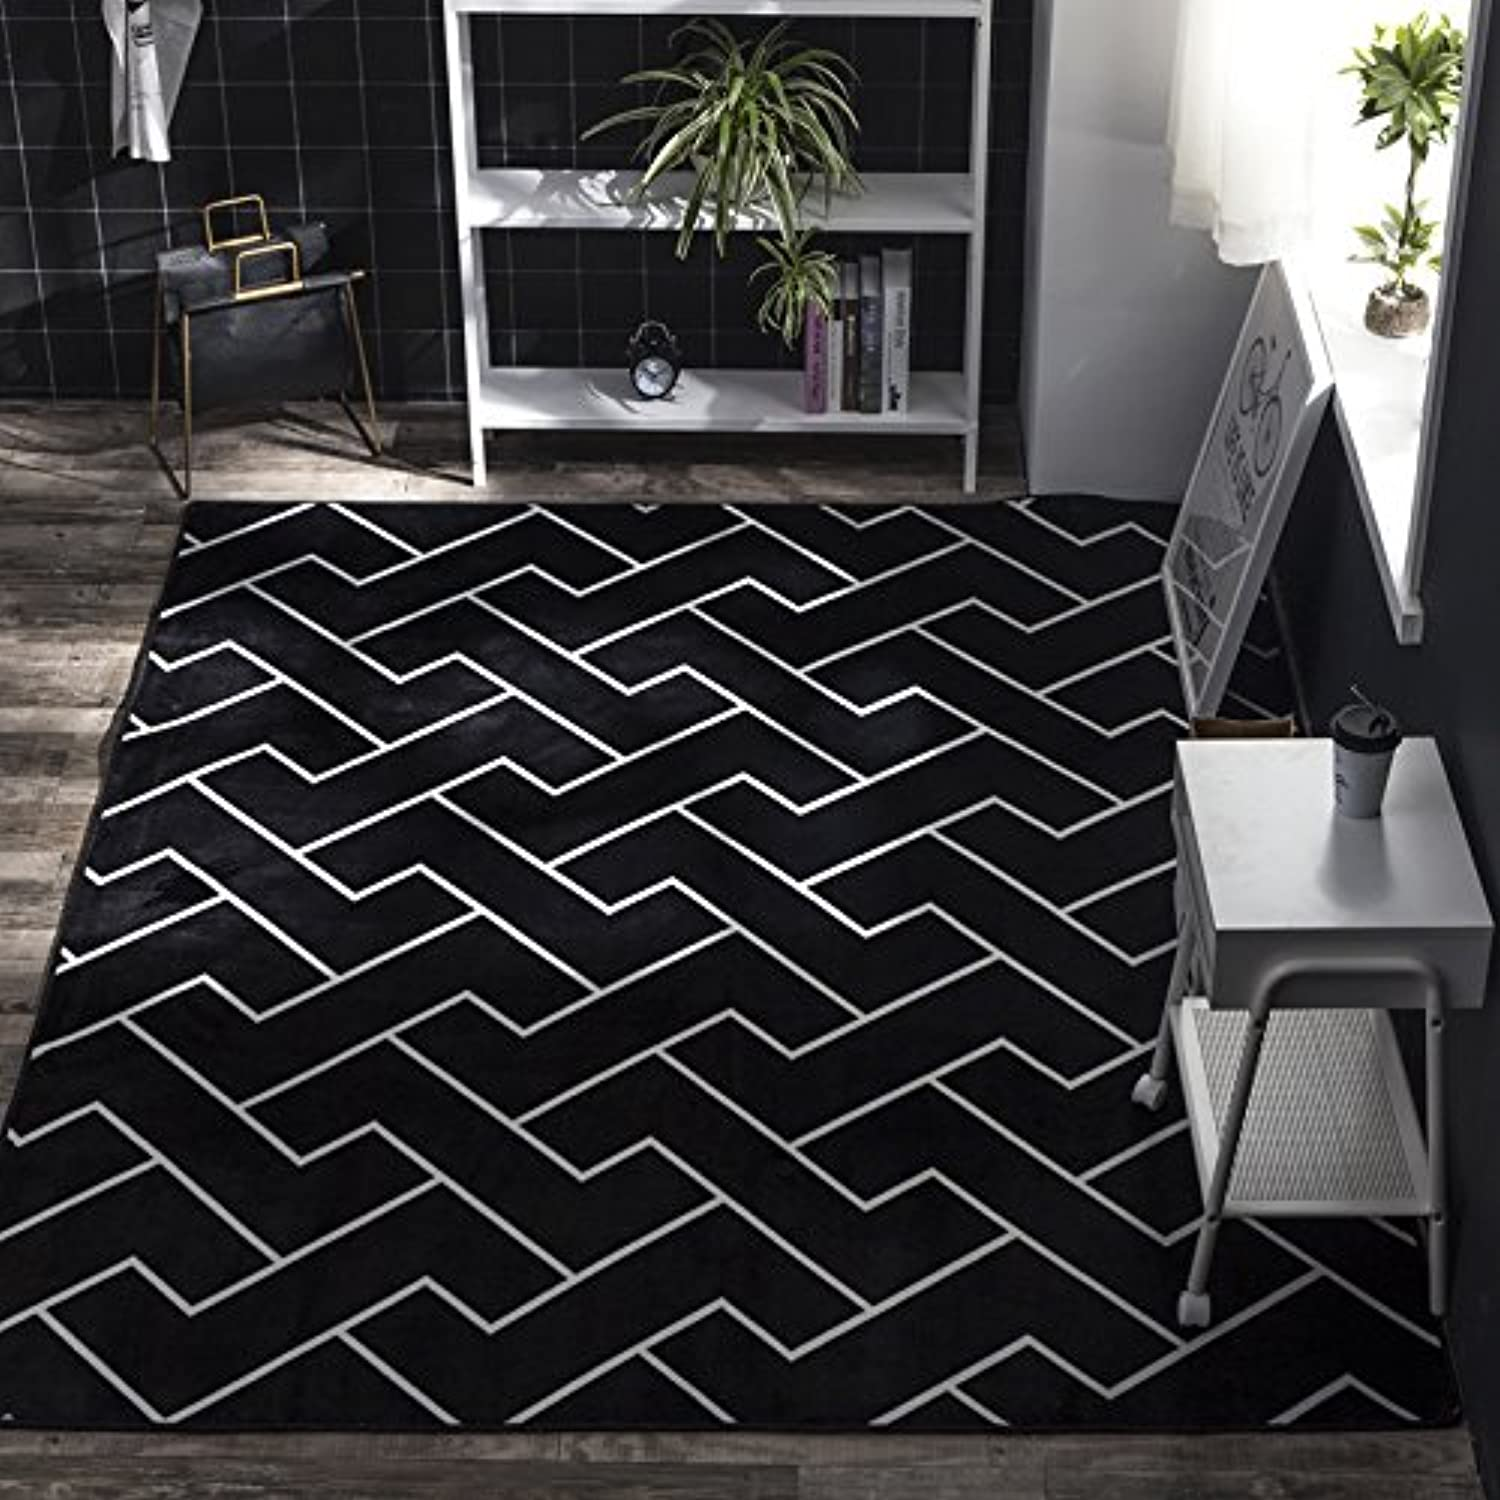 Simple thickening doormat, polyester interior bedroom home-K-190x195cm(75x77inch)